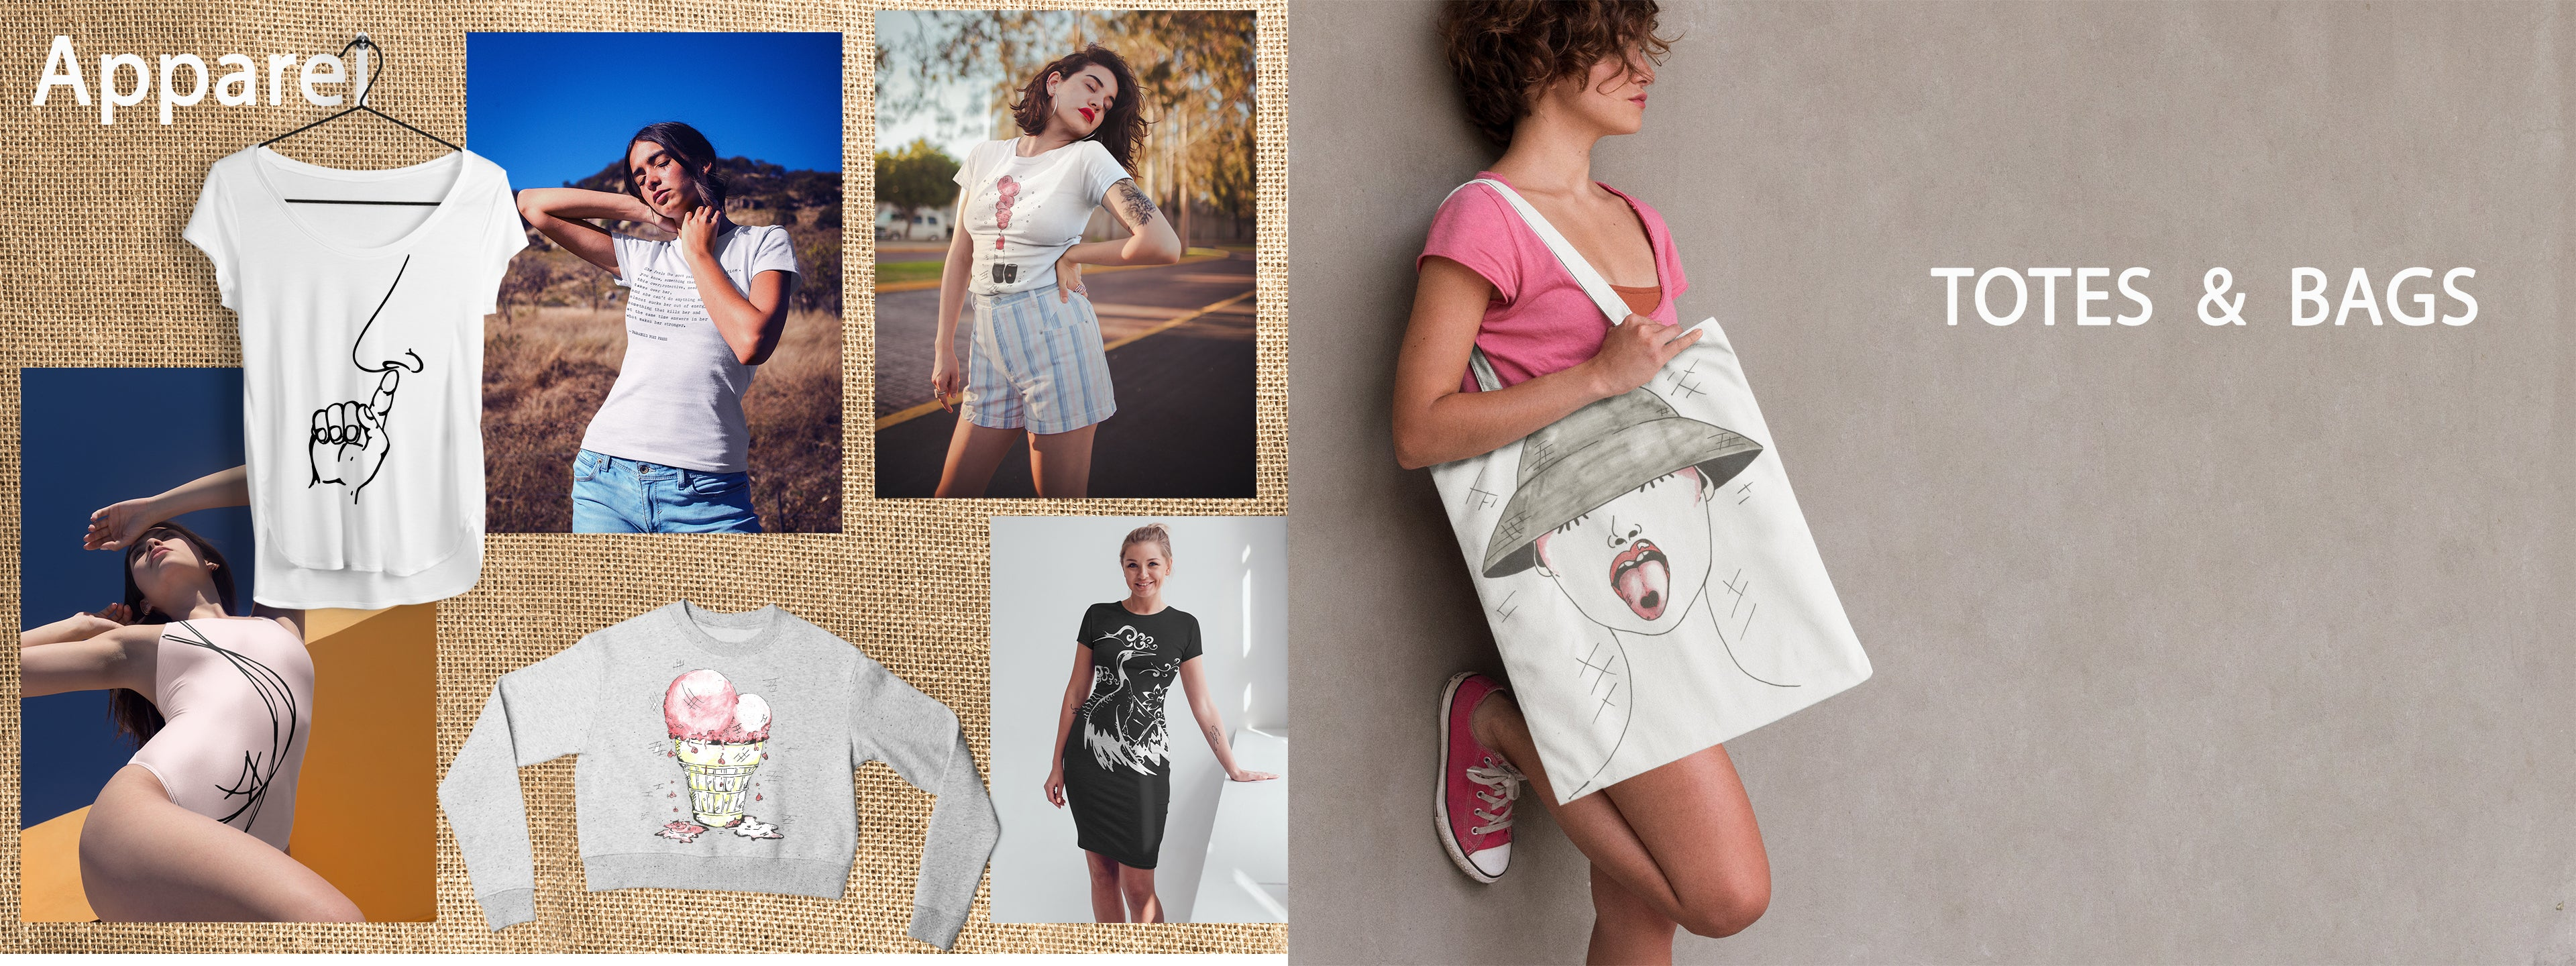 Apparel and Totes & Bags